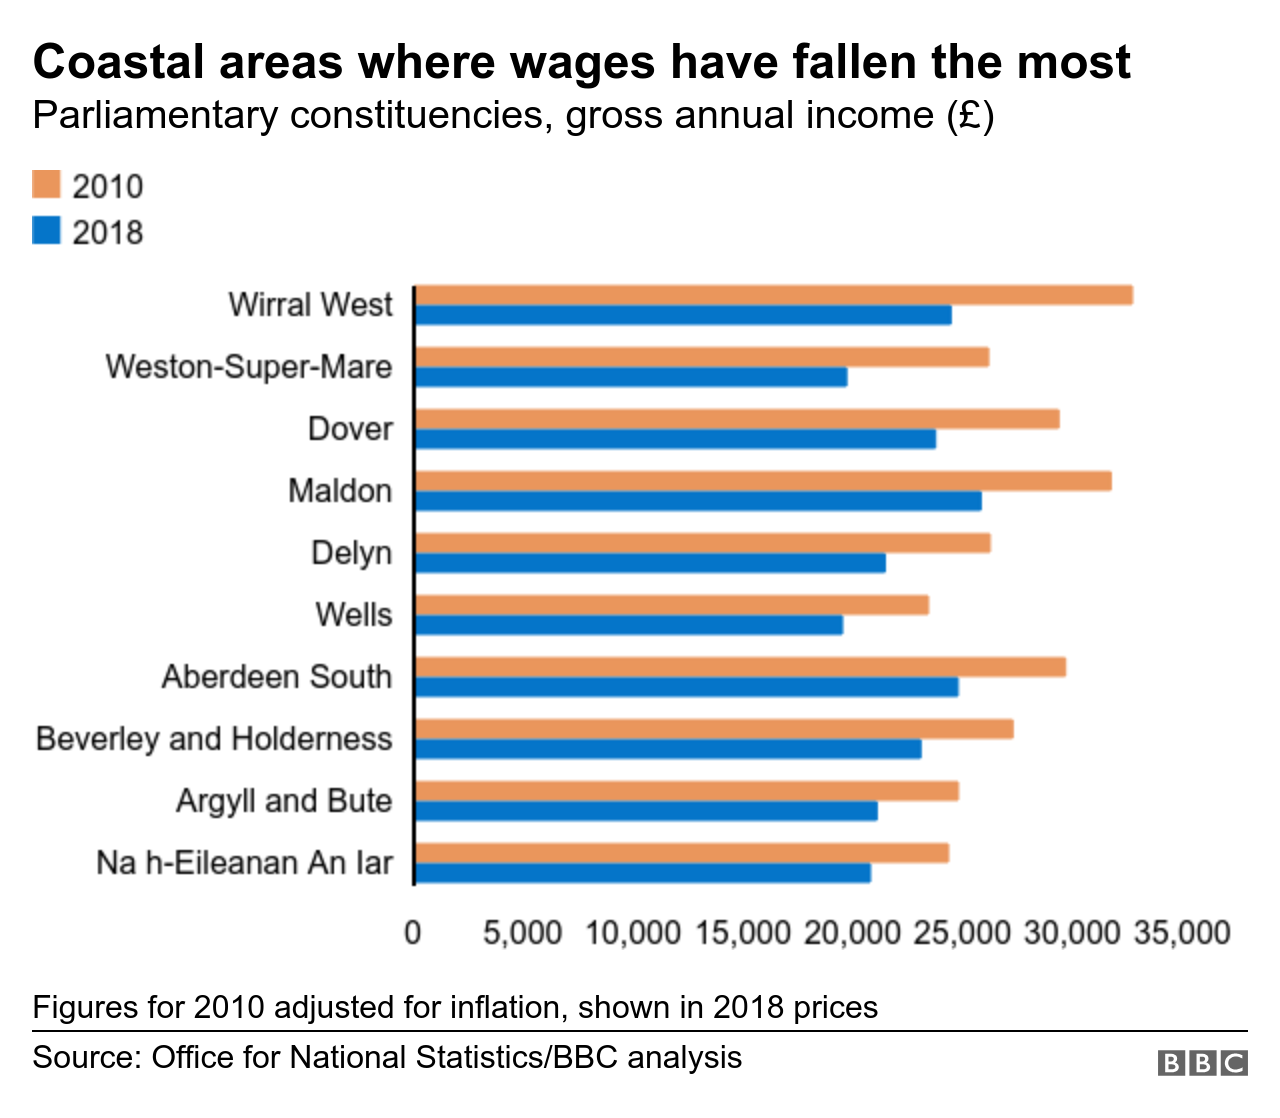 Chart showing coastal areas where wages have fallen the most